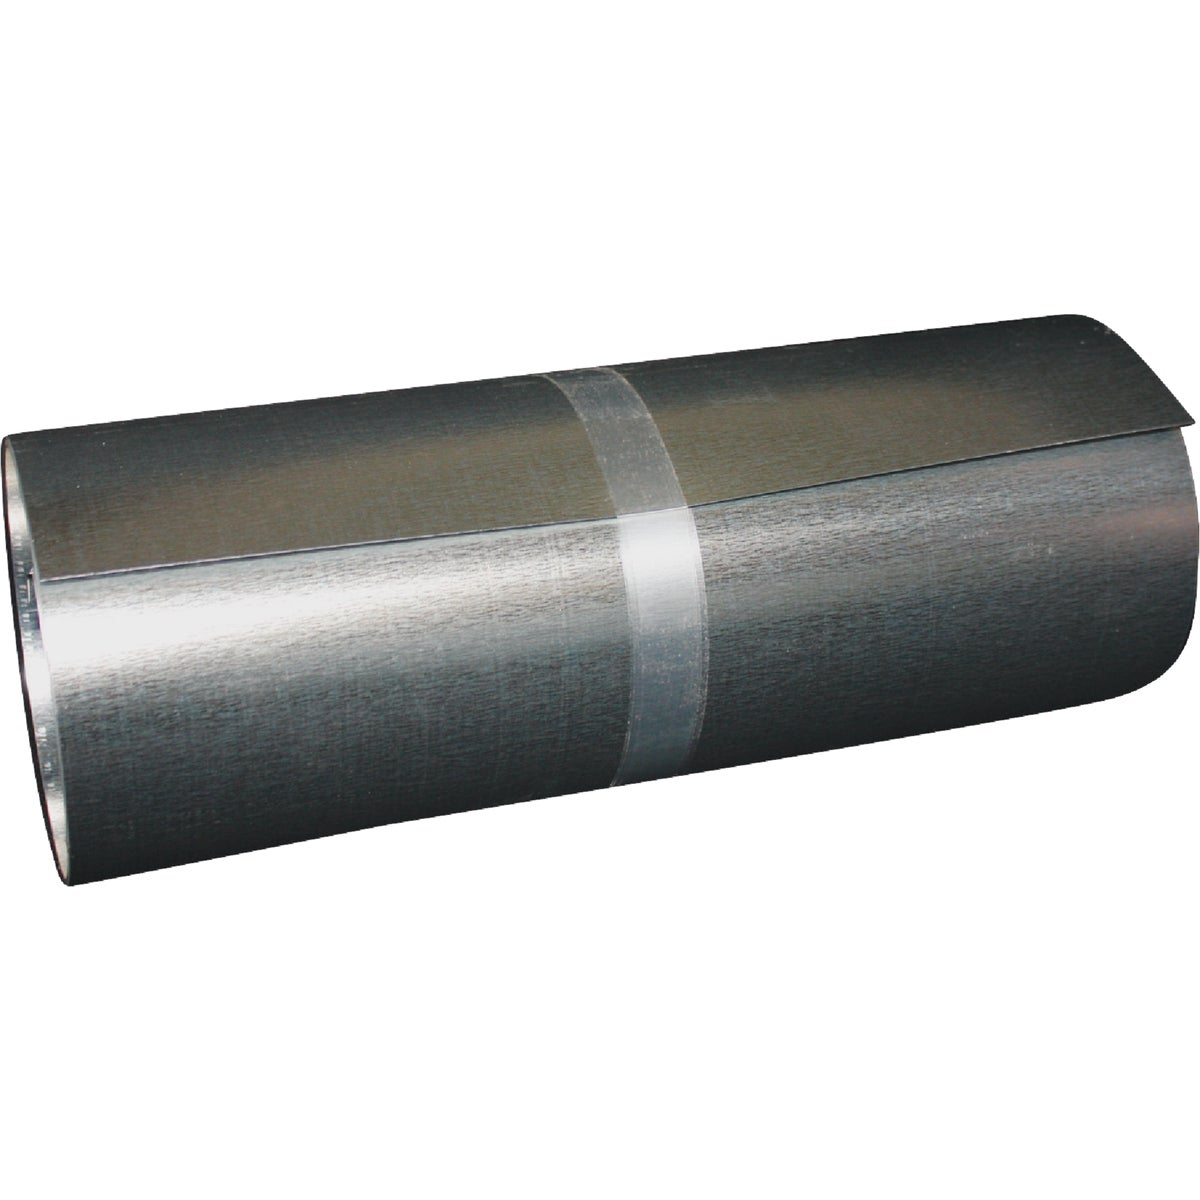 "14""X10' GALV ROLL VALLEY - 30053-GV10 by Klauer Mfg Co"